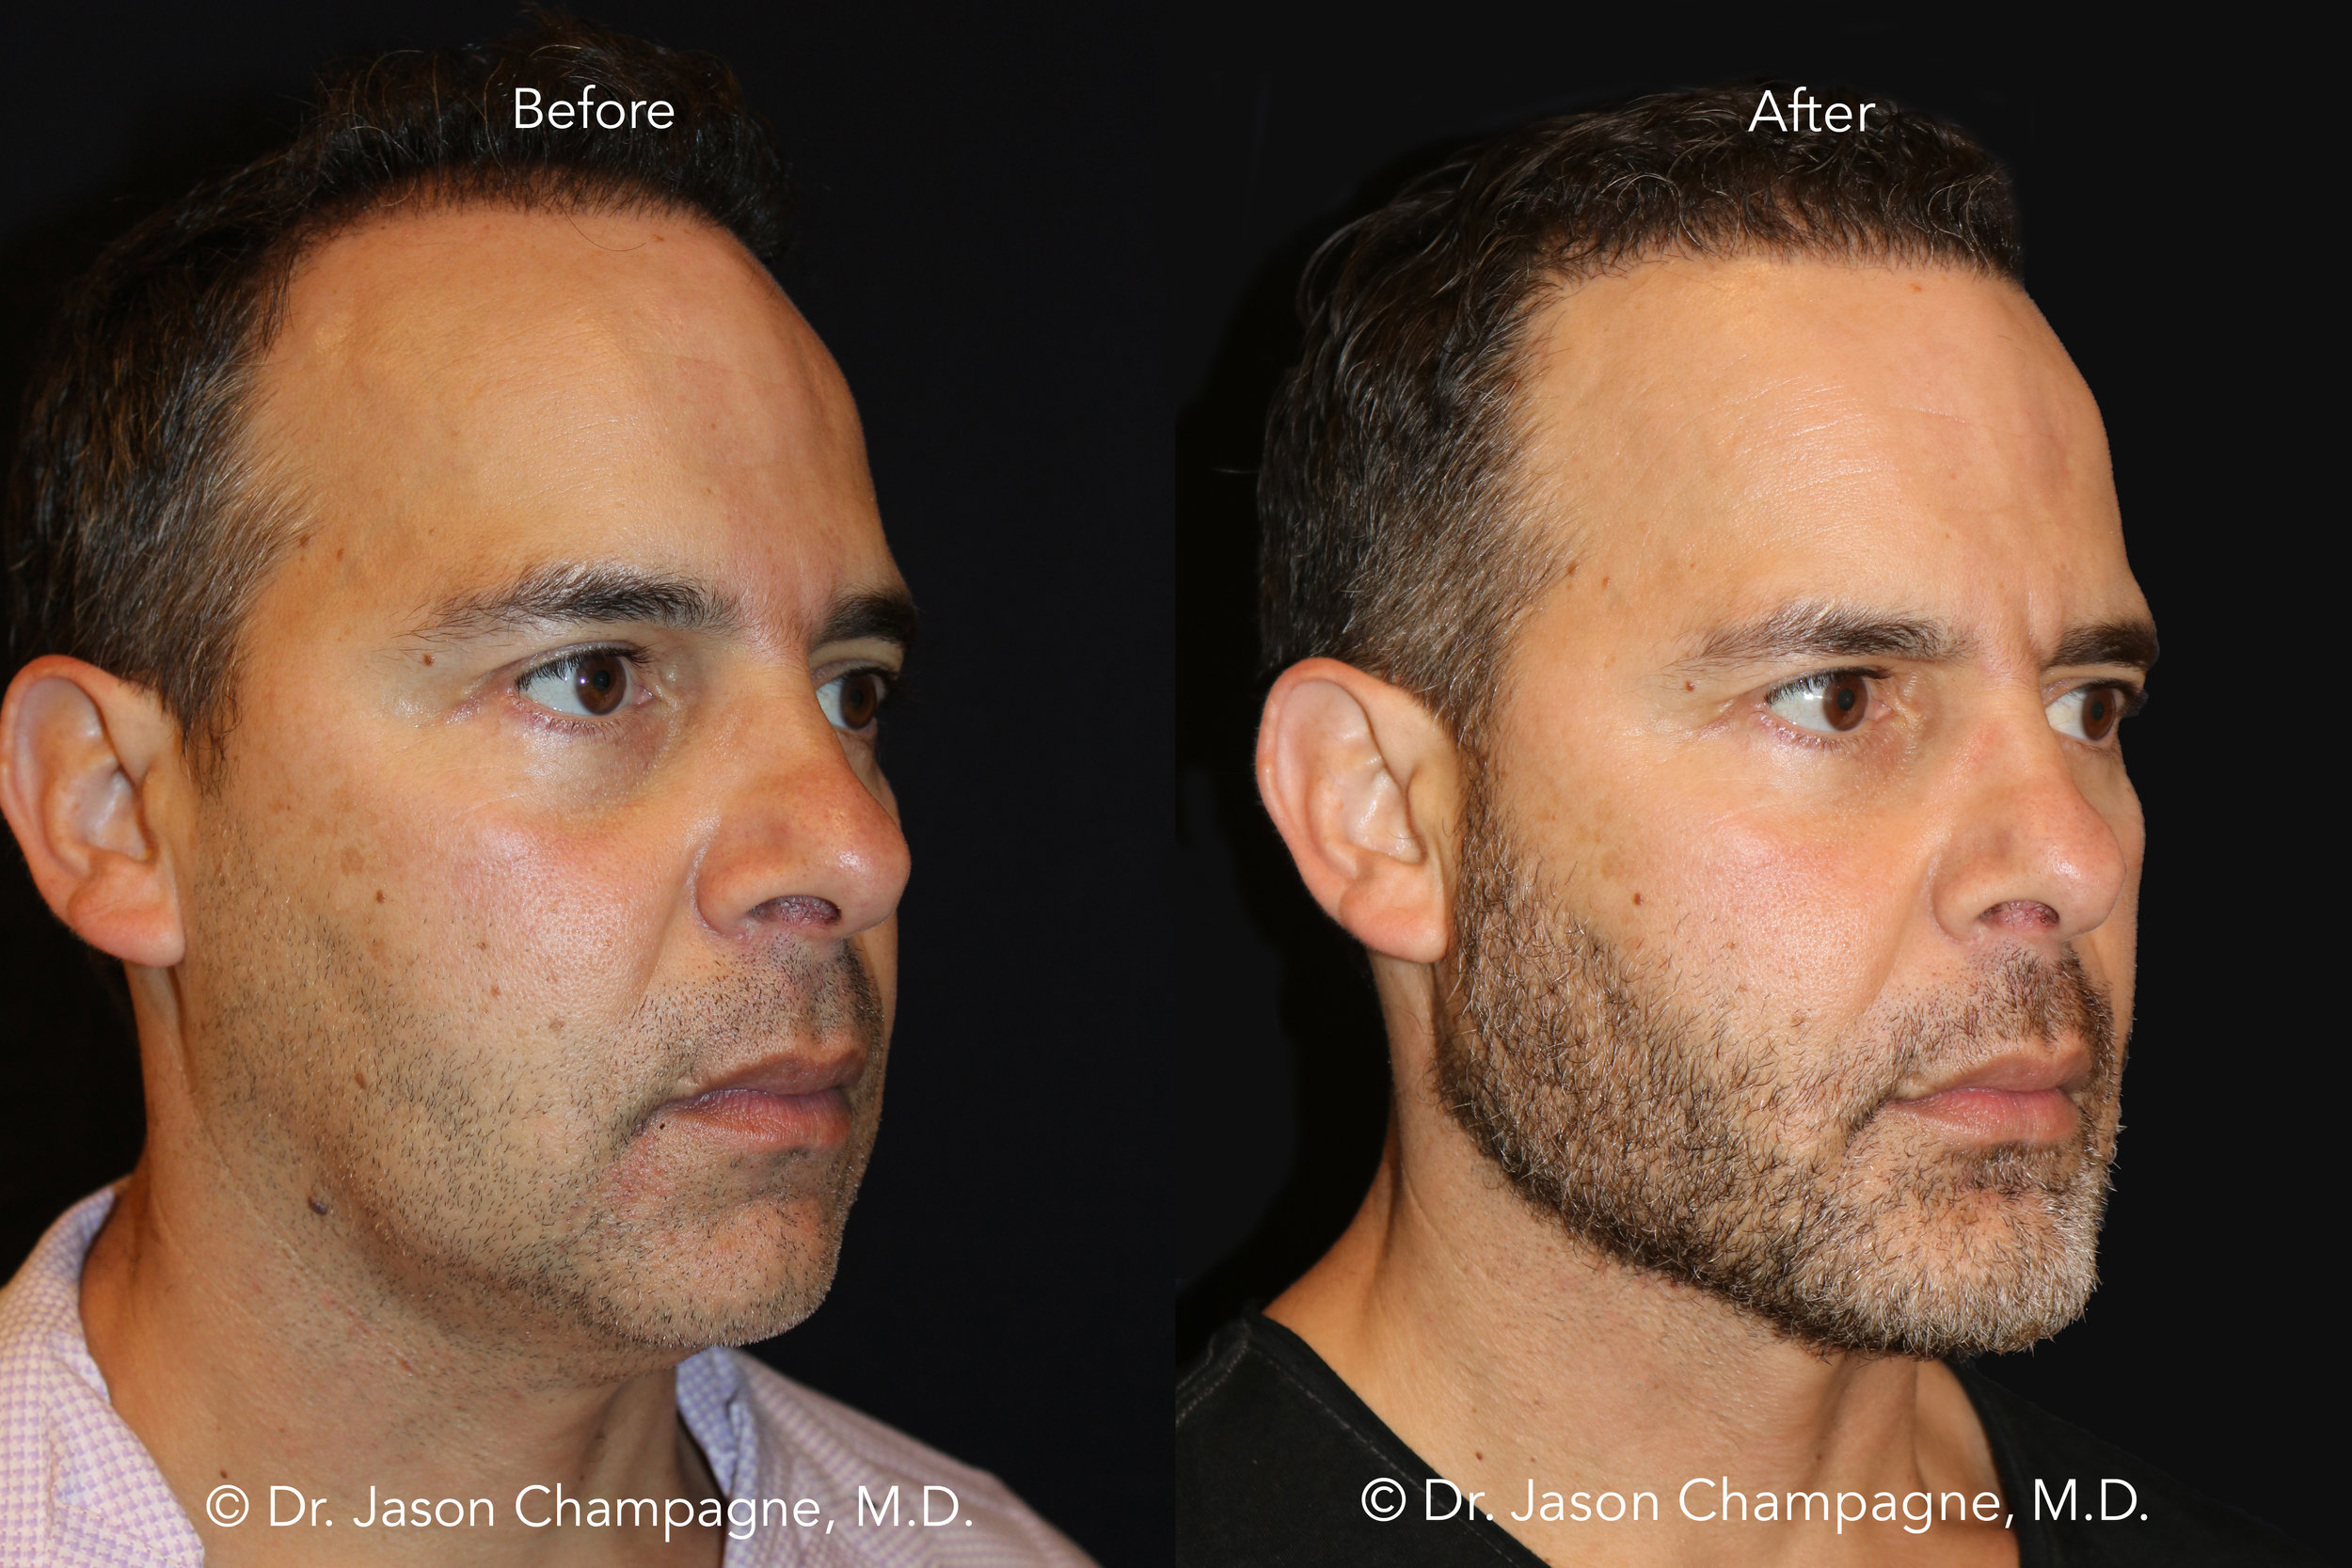 Dr-Jason-Champagne-Custom-Chin-and-Jaw-Hair-Transplantation-Before-and-After-3_4.jpg